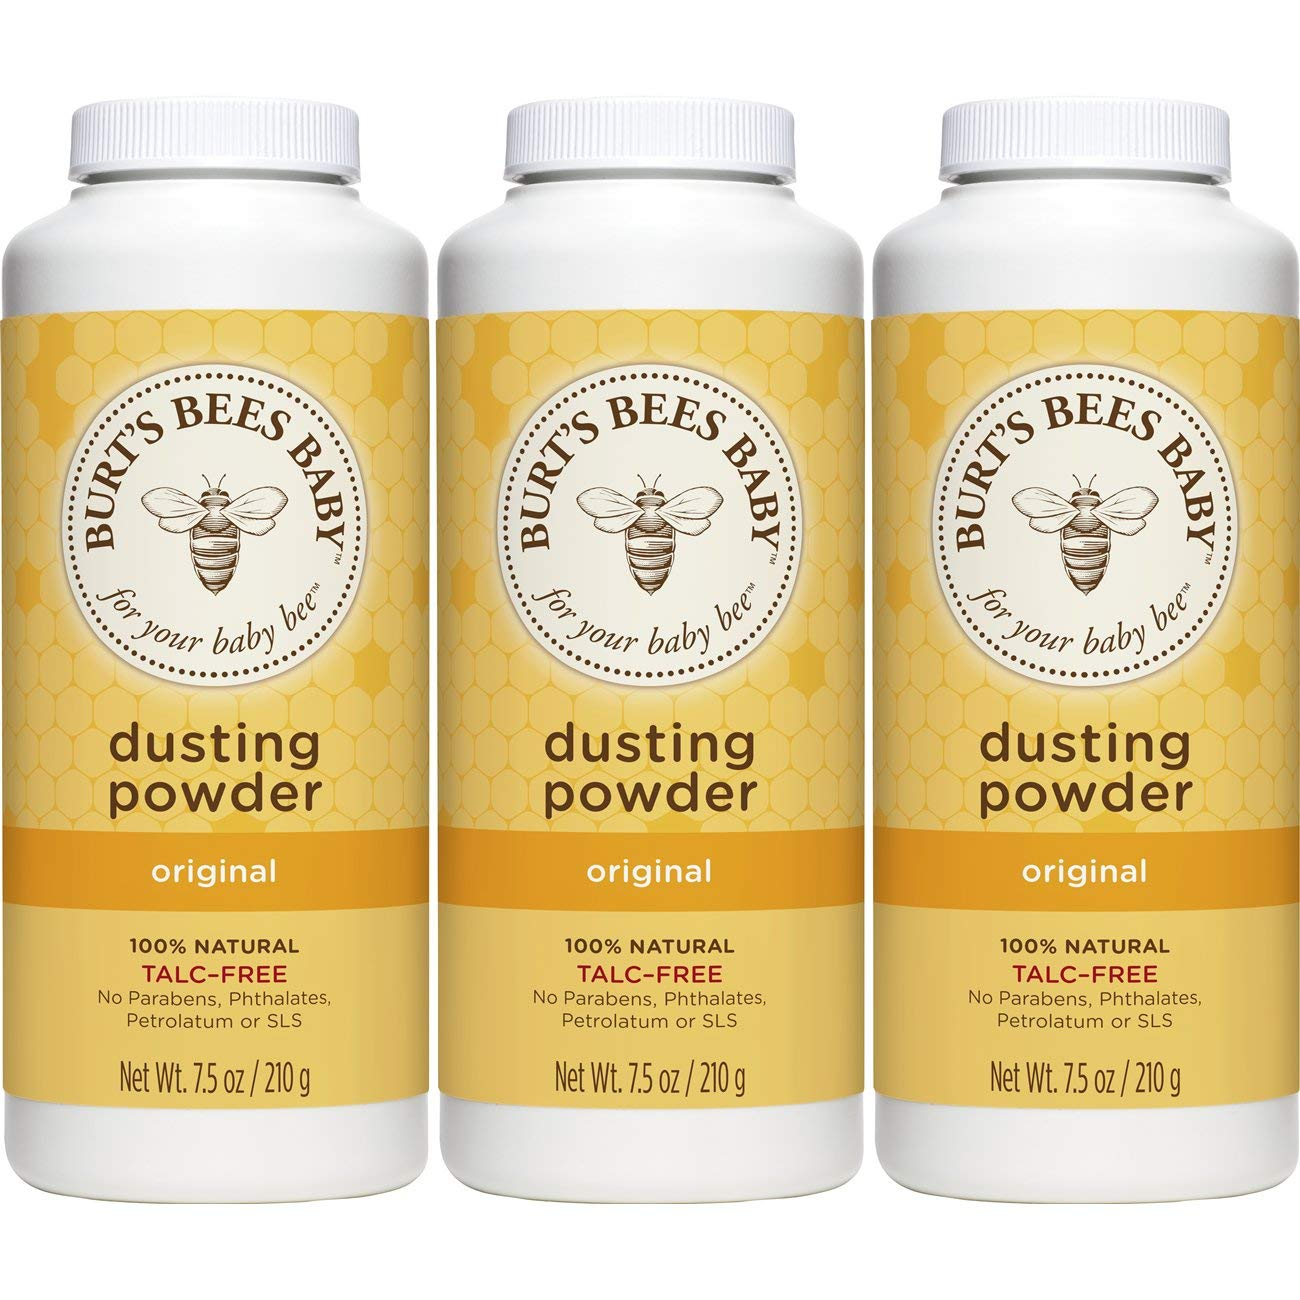 Burt's Bees Baby 100% Natural Dusting Powder, Talc-Free Baby Powder - 7.5 Ounce Bottle (Pack of 3) by Burt's Bees Baby